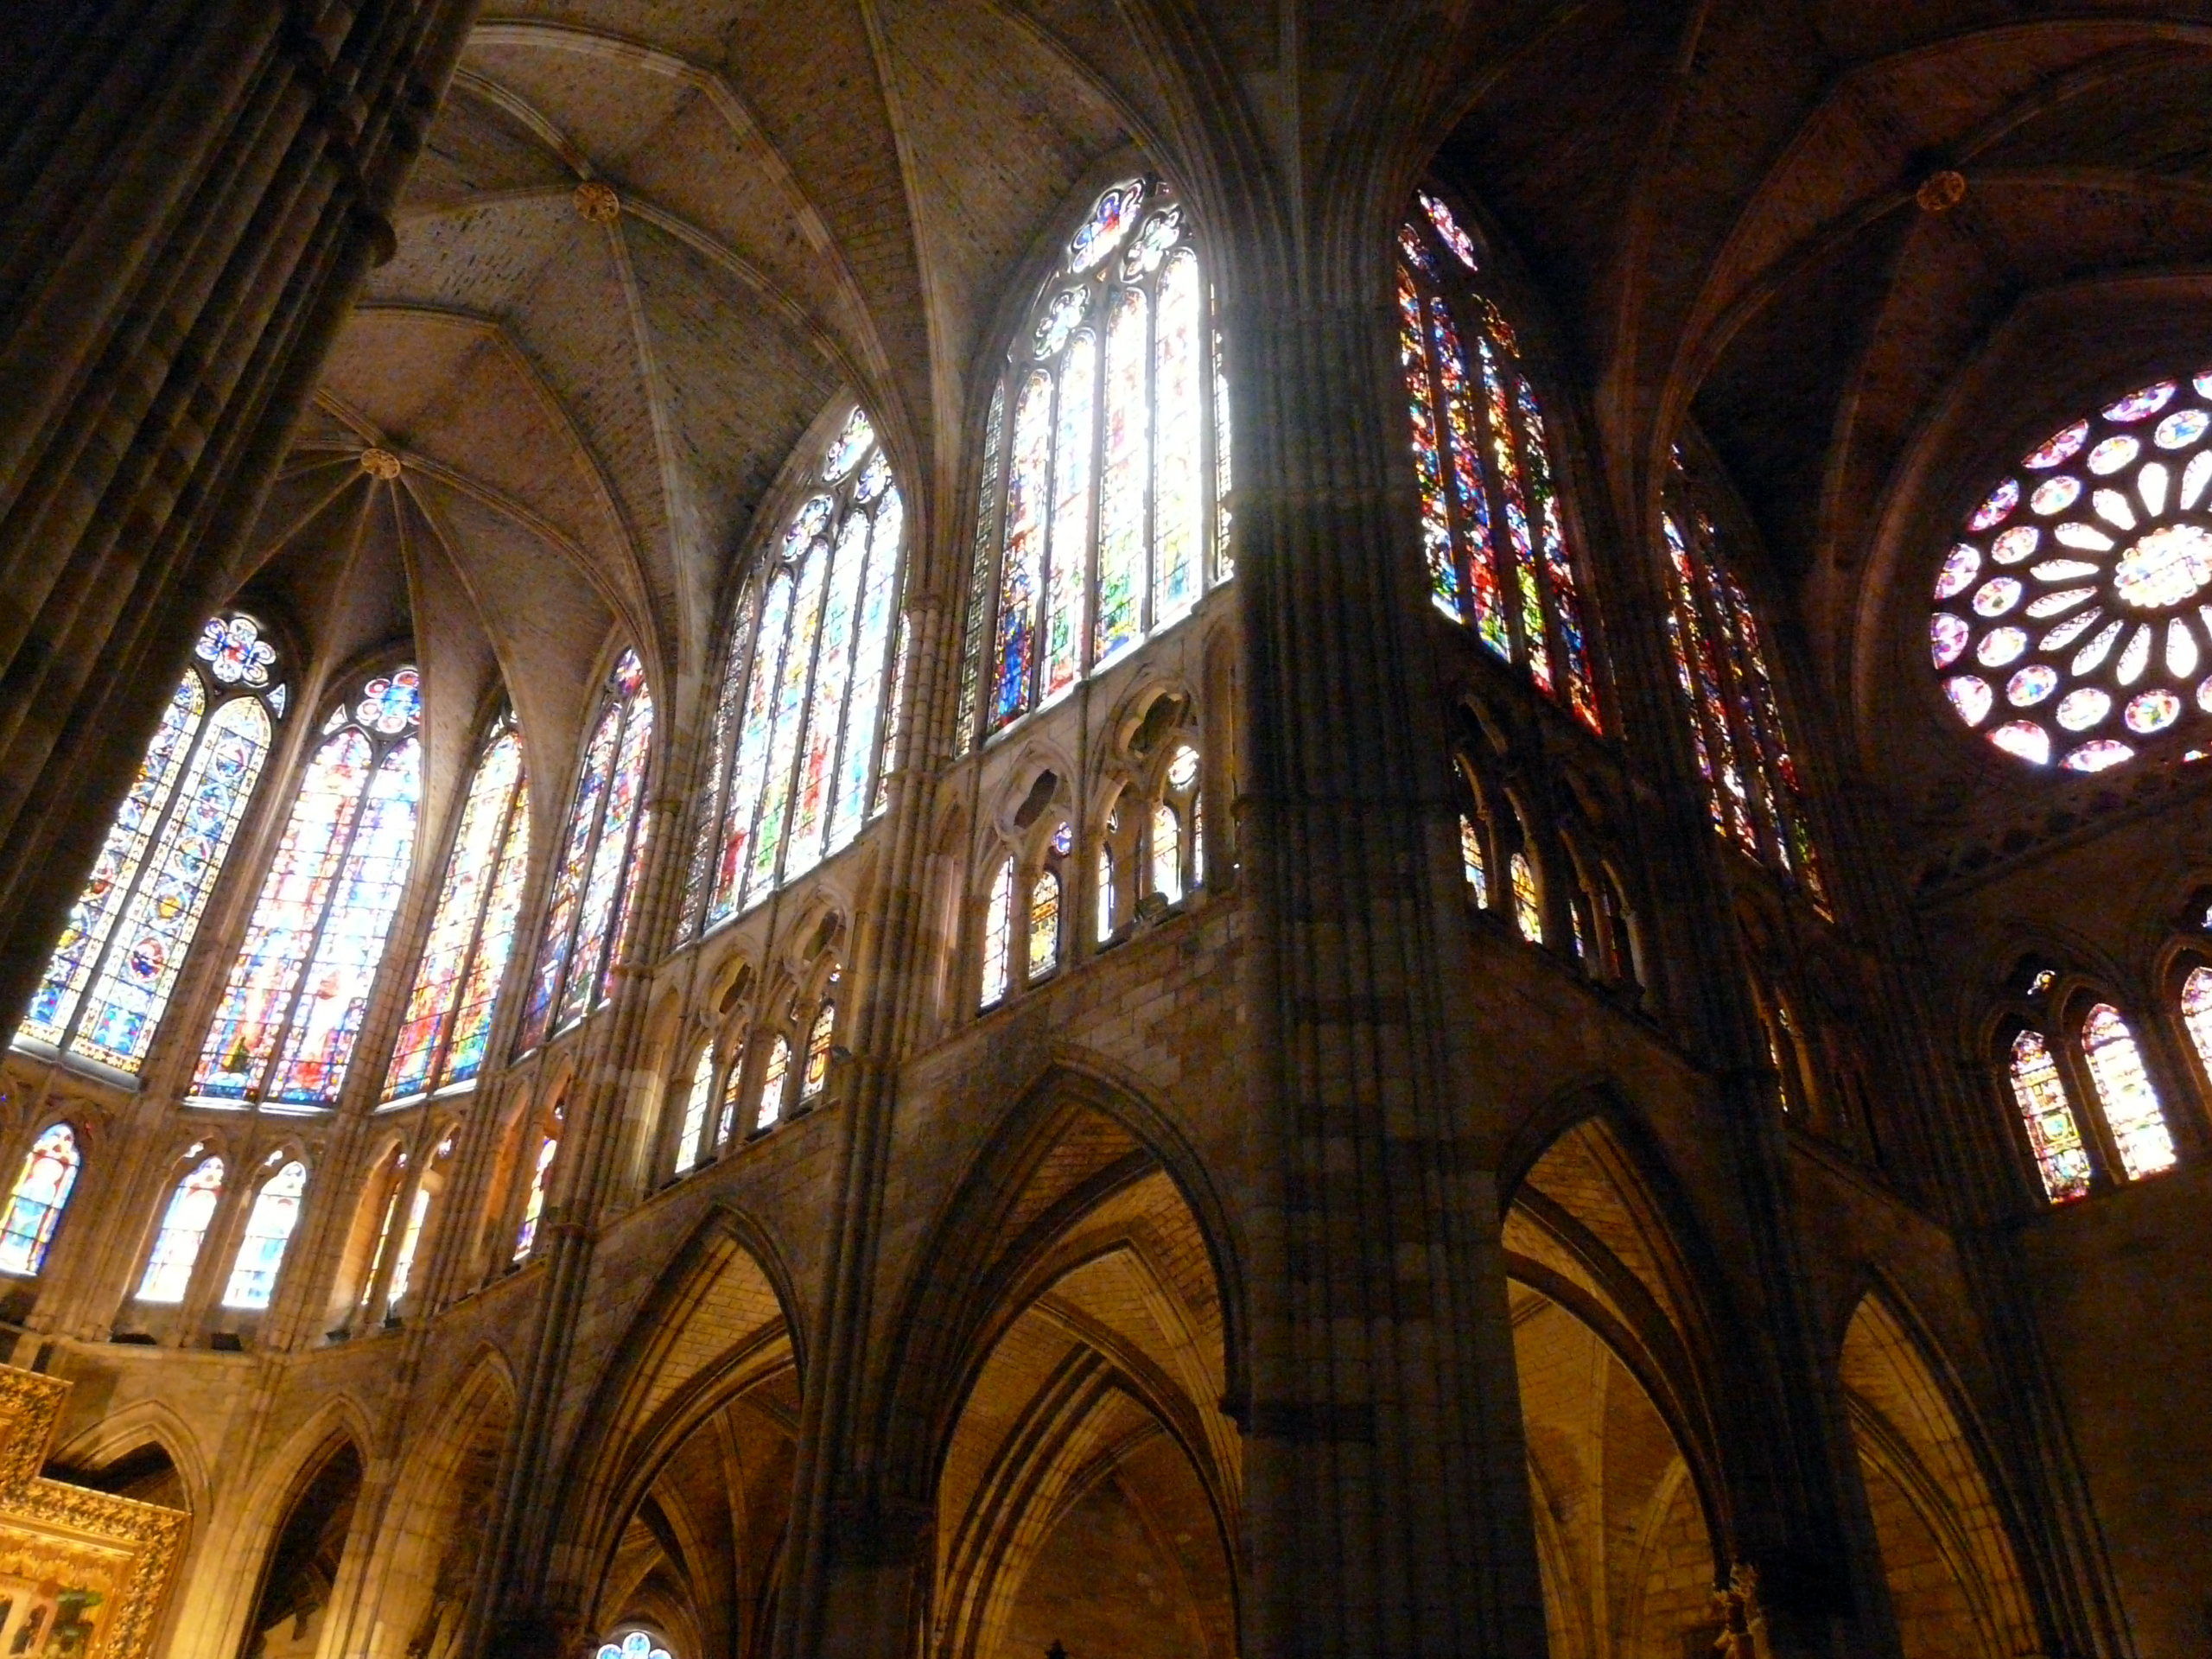 Stained glass windows in the León Cathedral (13th to 15th century)